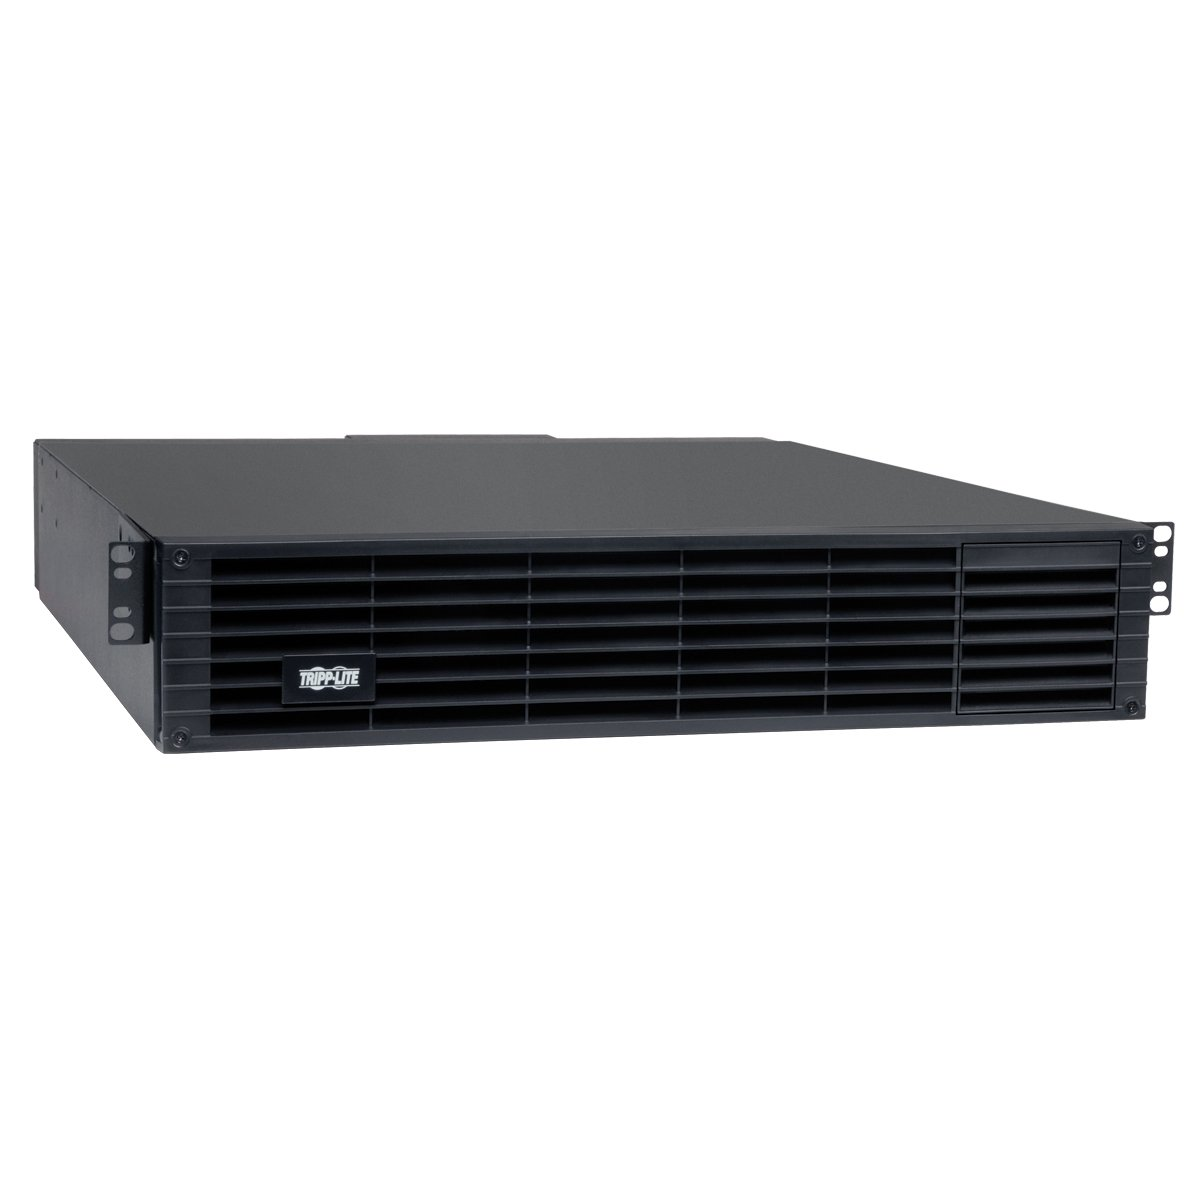 TRIPP LITE BP48V27-2US 48VDC External Battery Pack Select AVR Online UPS Rack Tower 2U